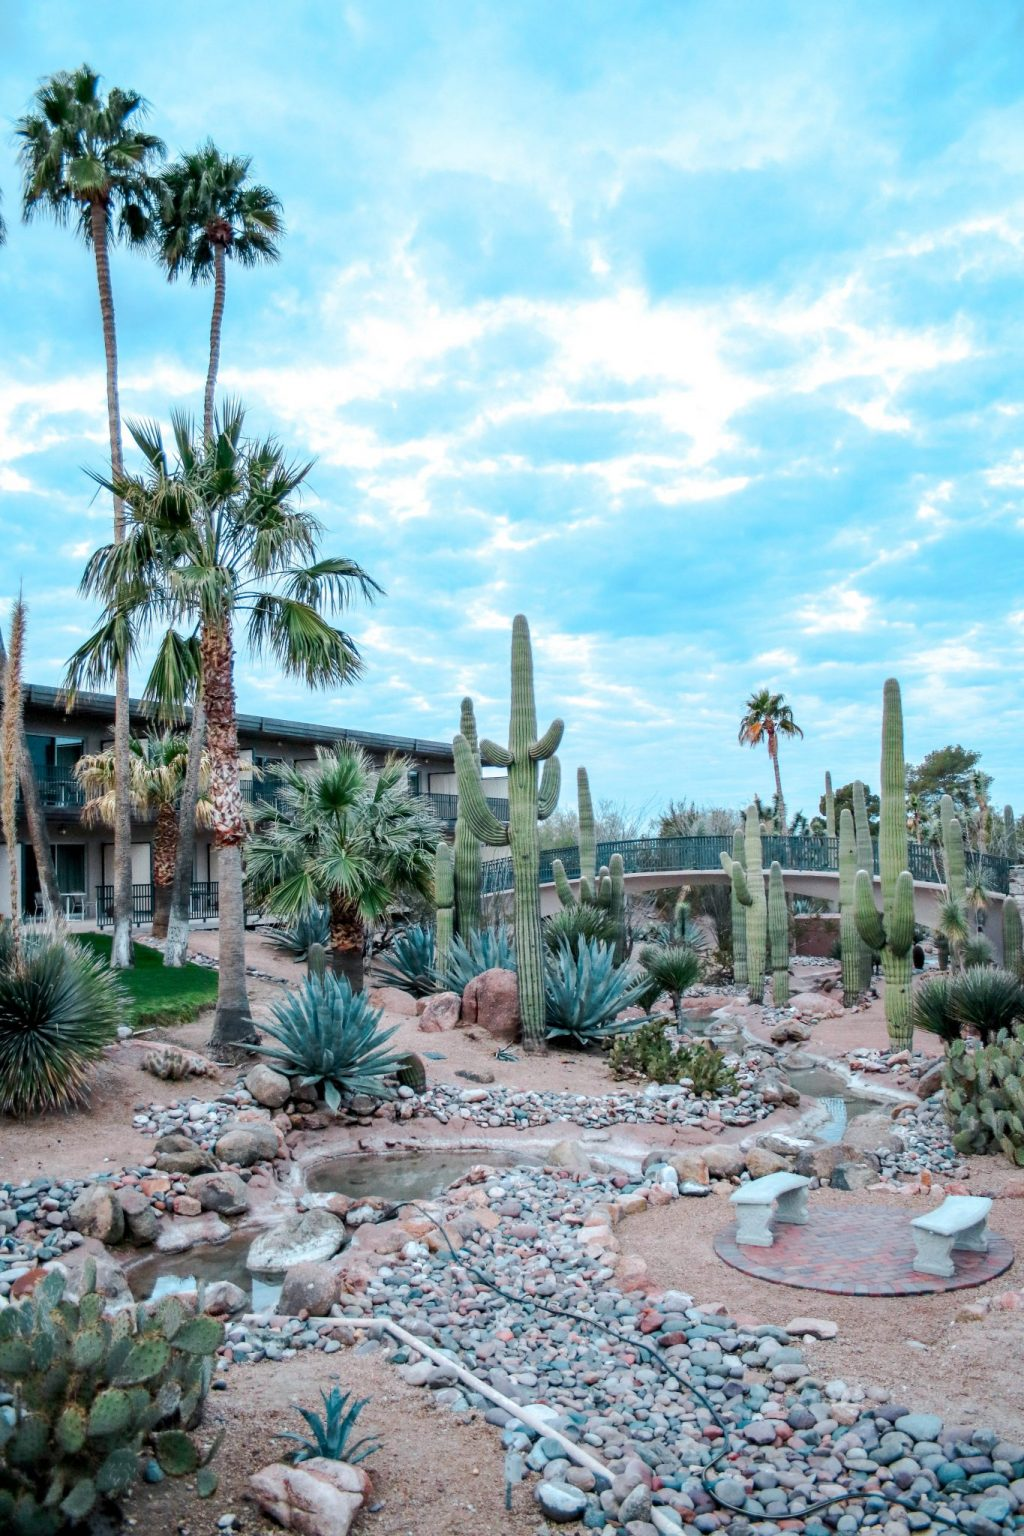 Civana Carefree: The Wellness Resort You DESERVE! Located in Arizona surrounded by the Sonoran Desert.